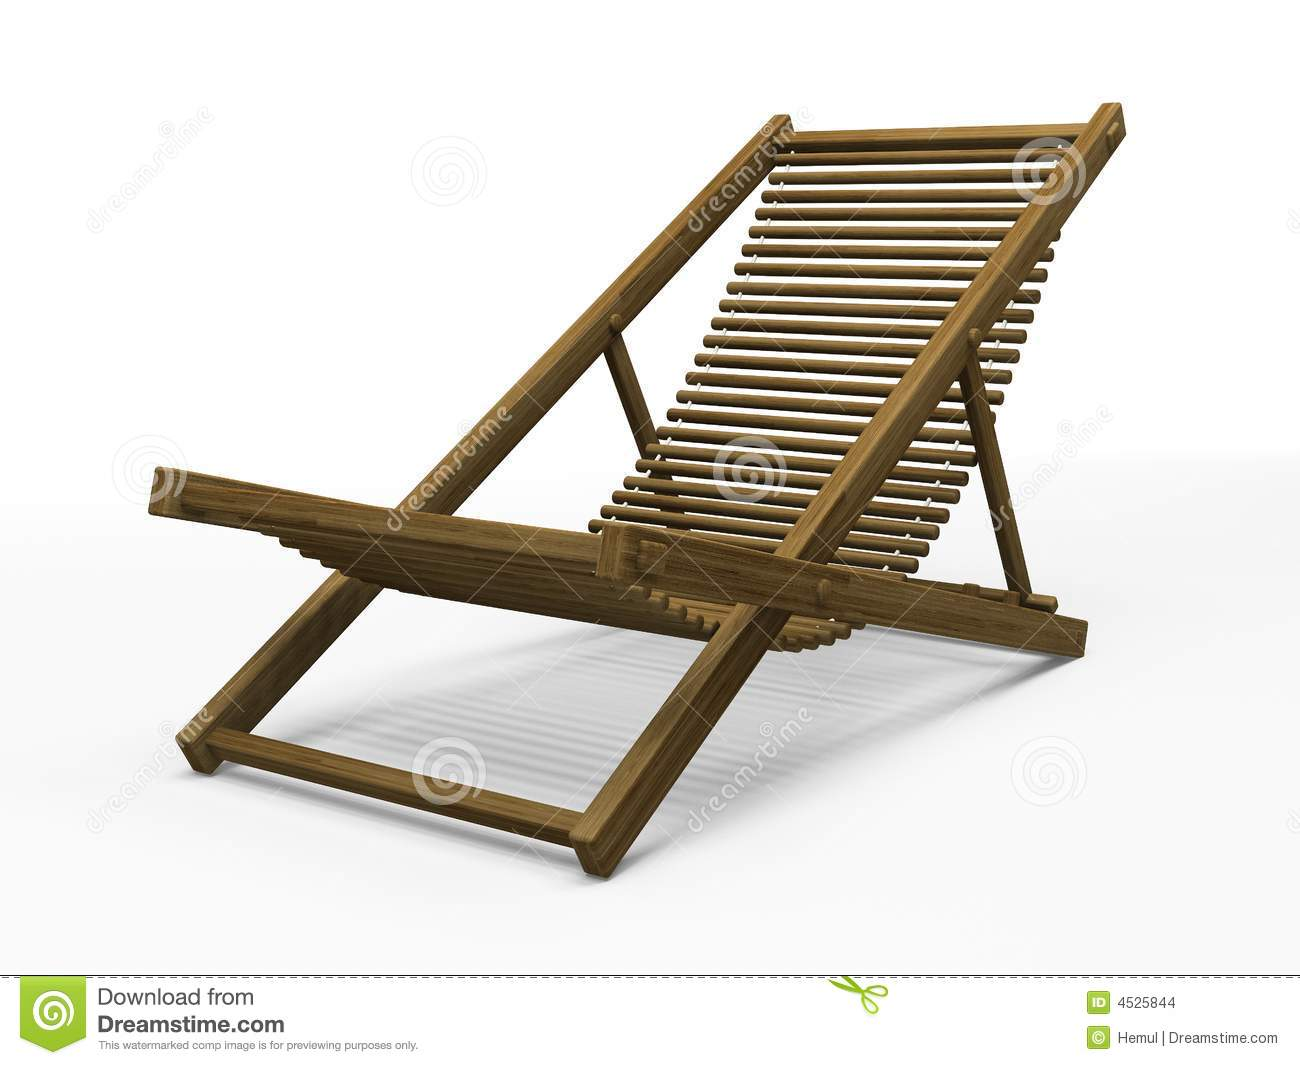 Wooden chaise longue stock illustration image of wooden for Chaise wooden